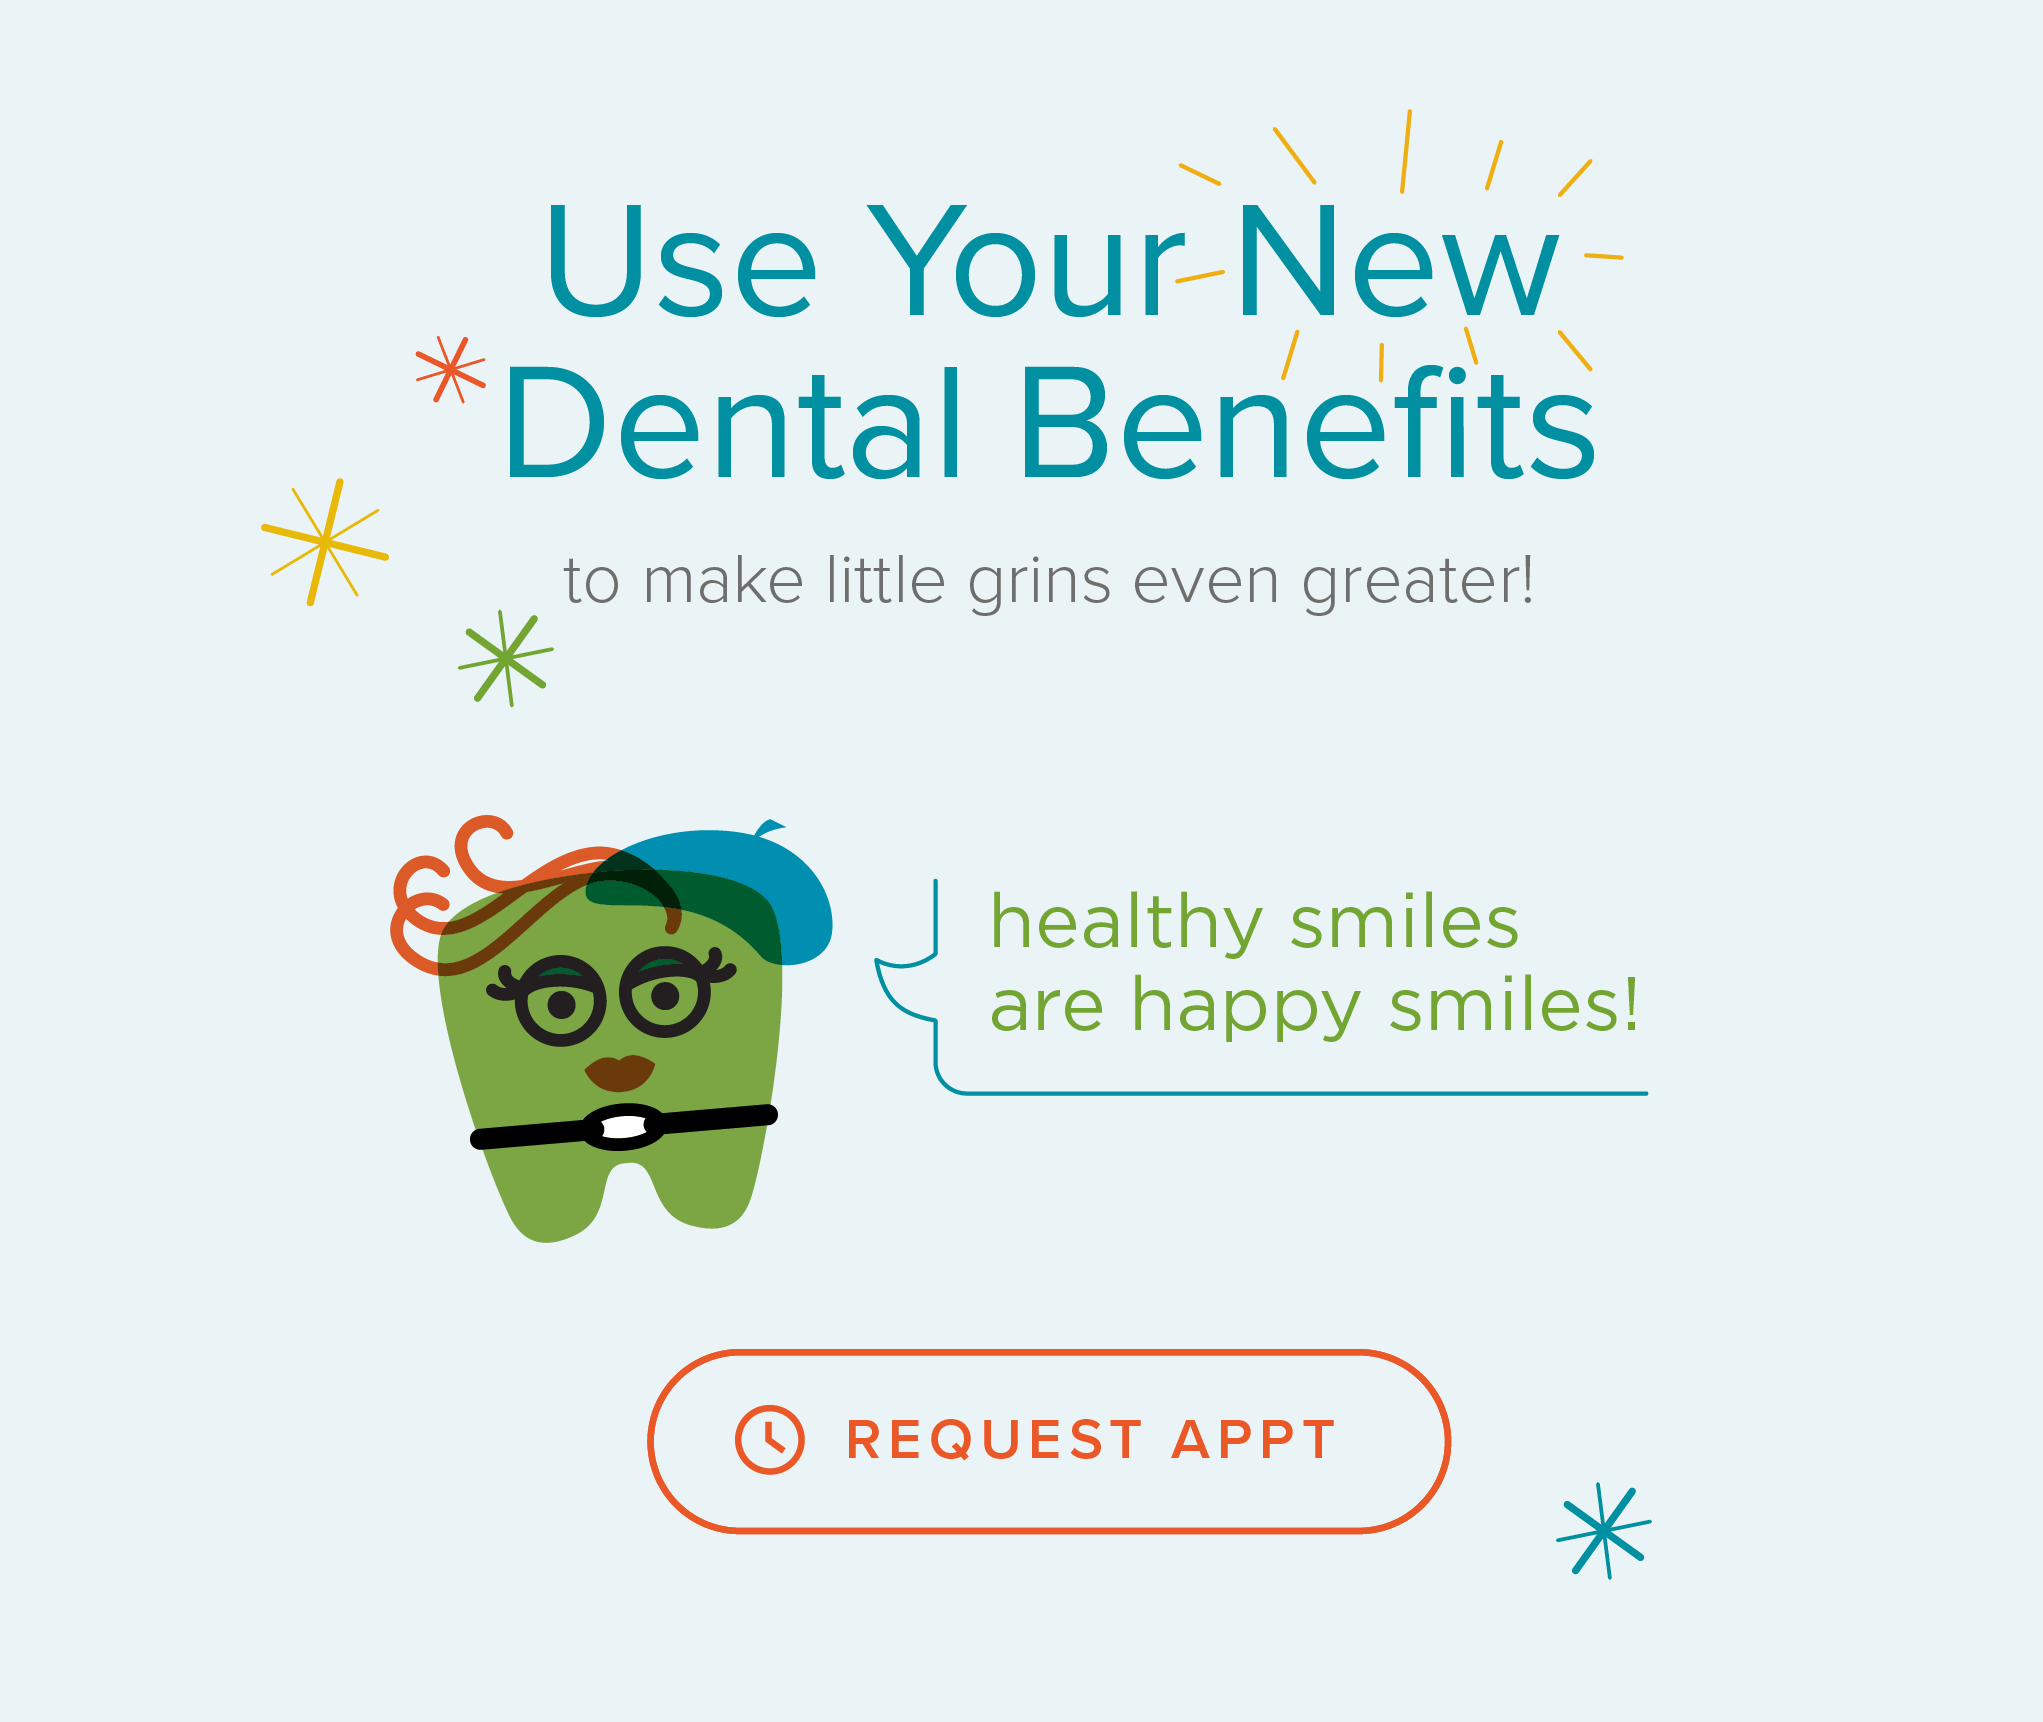 East Stapleton Kids' Dentistry and Orthodontics - Use Your New Dental Benefits